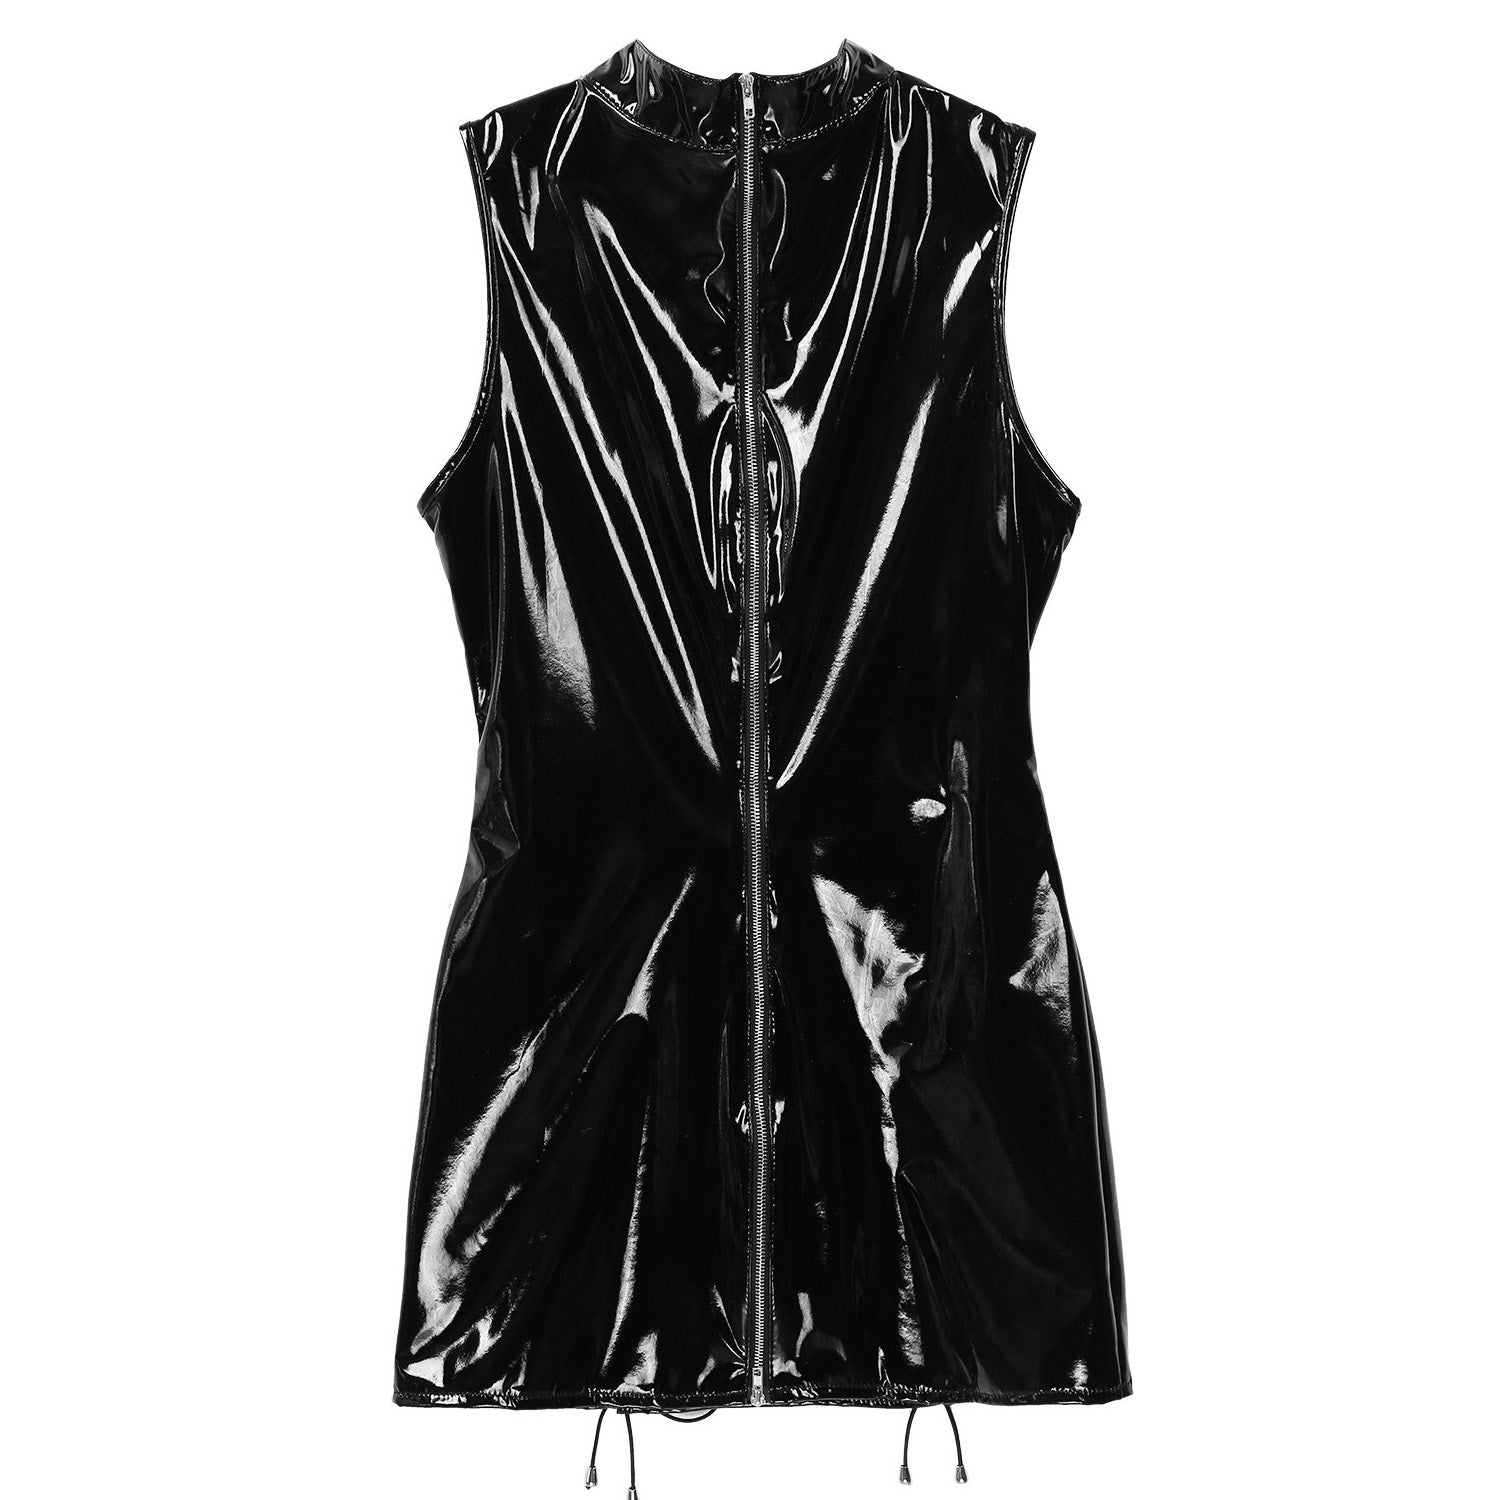 Hollow Out Lace-Up Latex Bodycon Mini Dress for Women / Gothic Fashion Wetlook Bodysuit - HARD'N'HEAVY